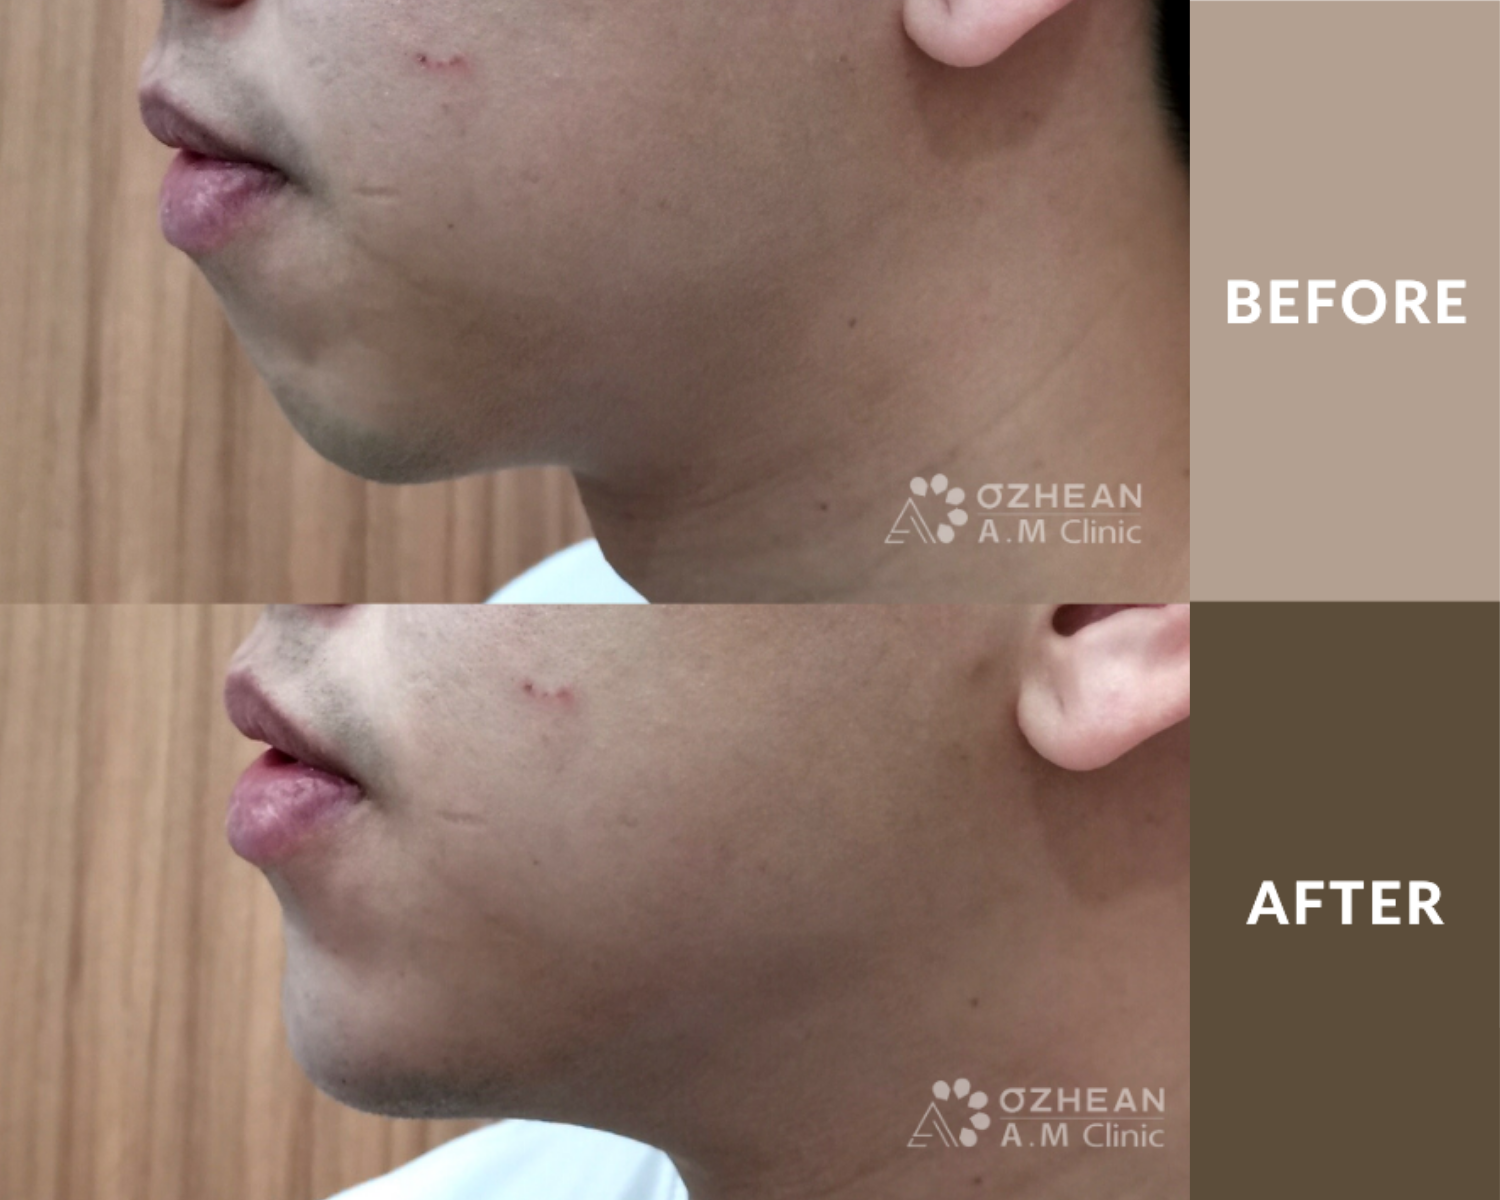 Ozhean AM - Chin Filler Before & After